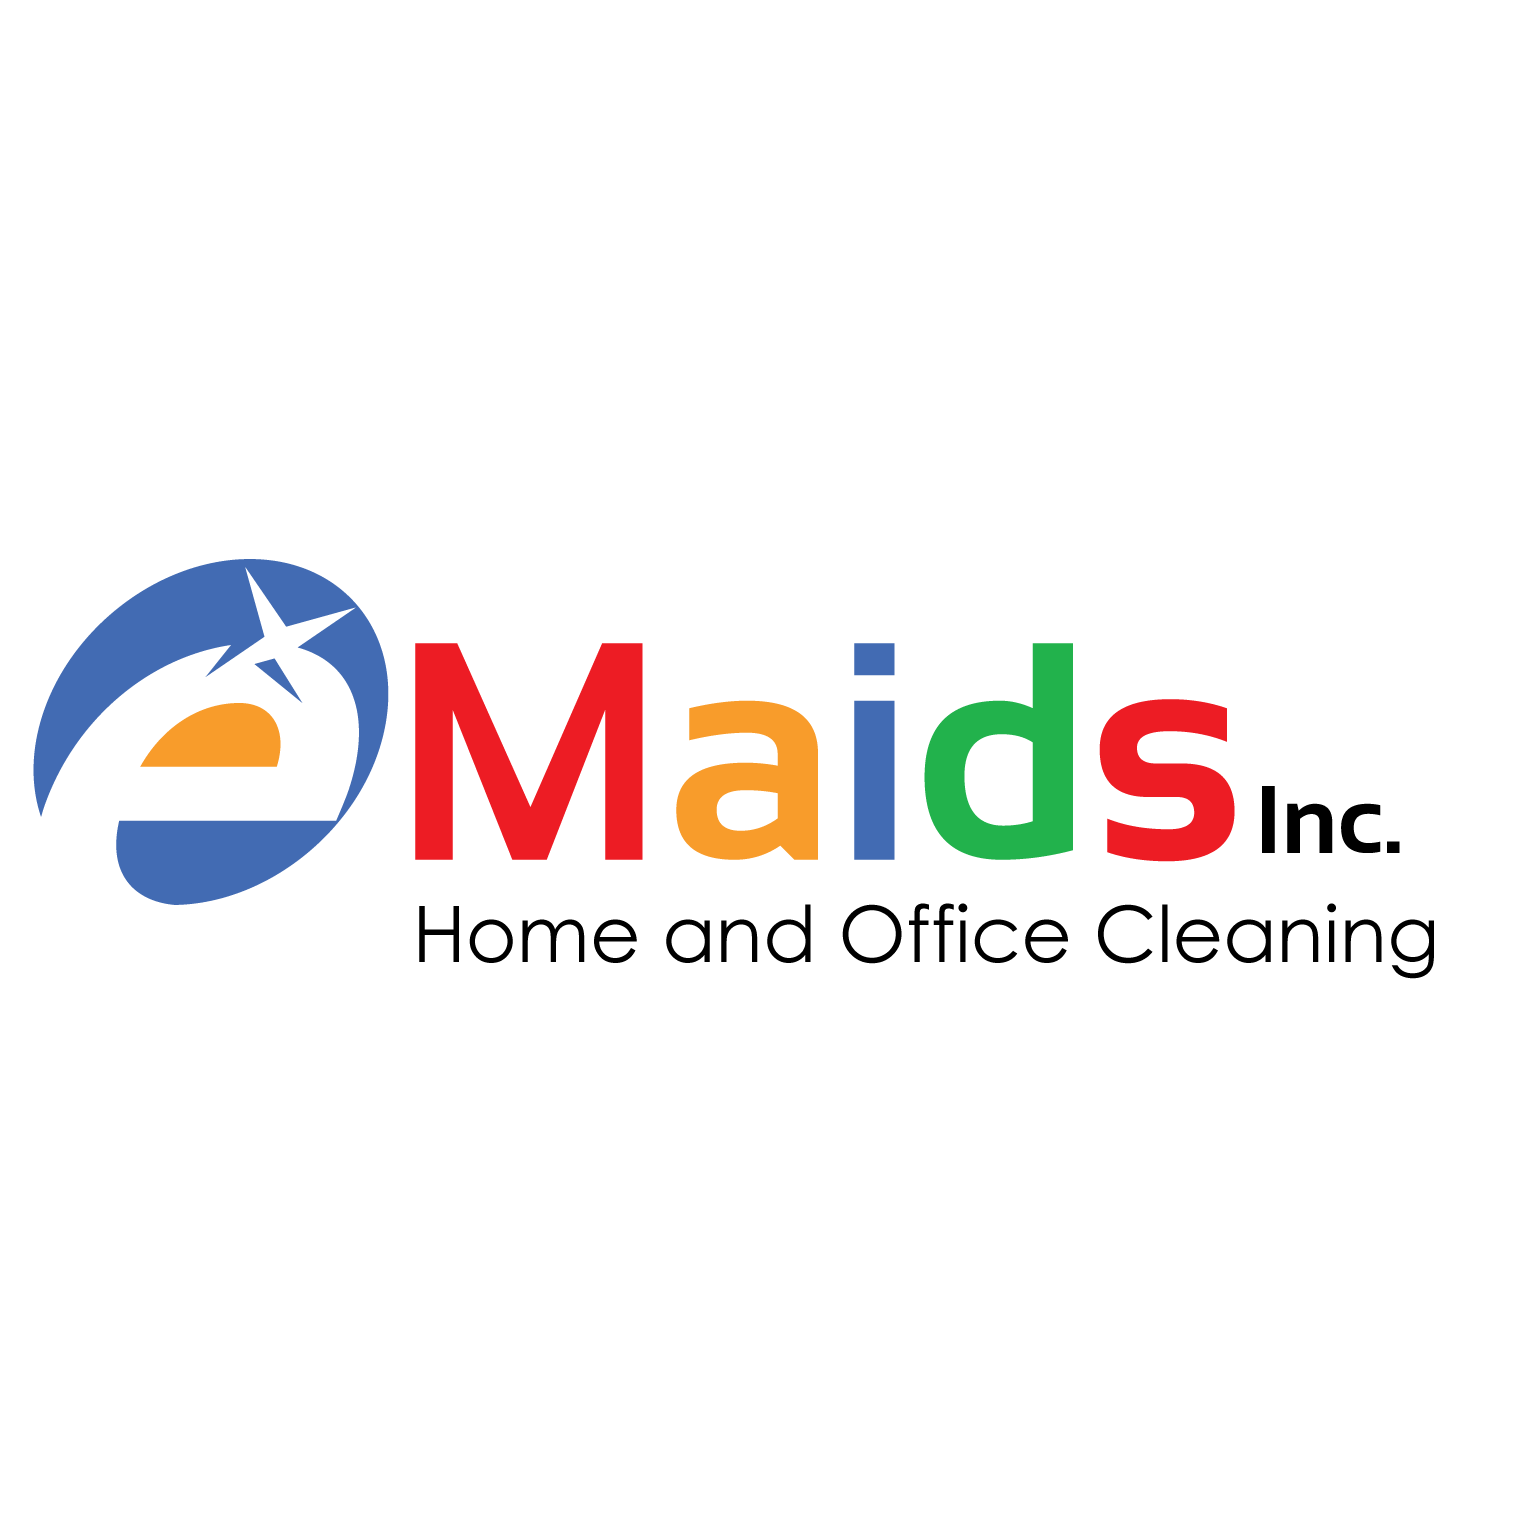 eMaids Cleaning Service of NYC